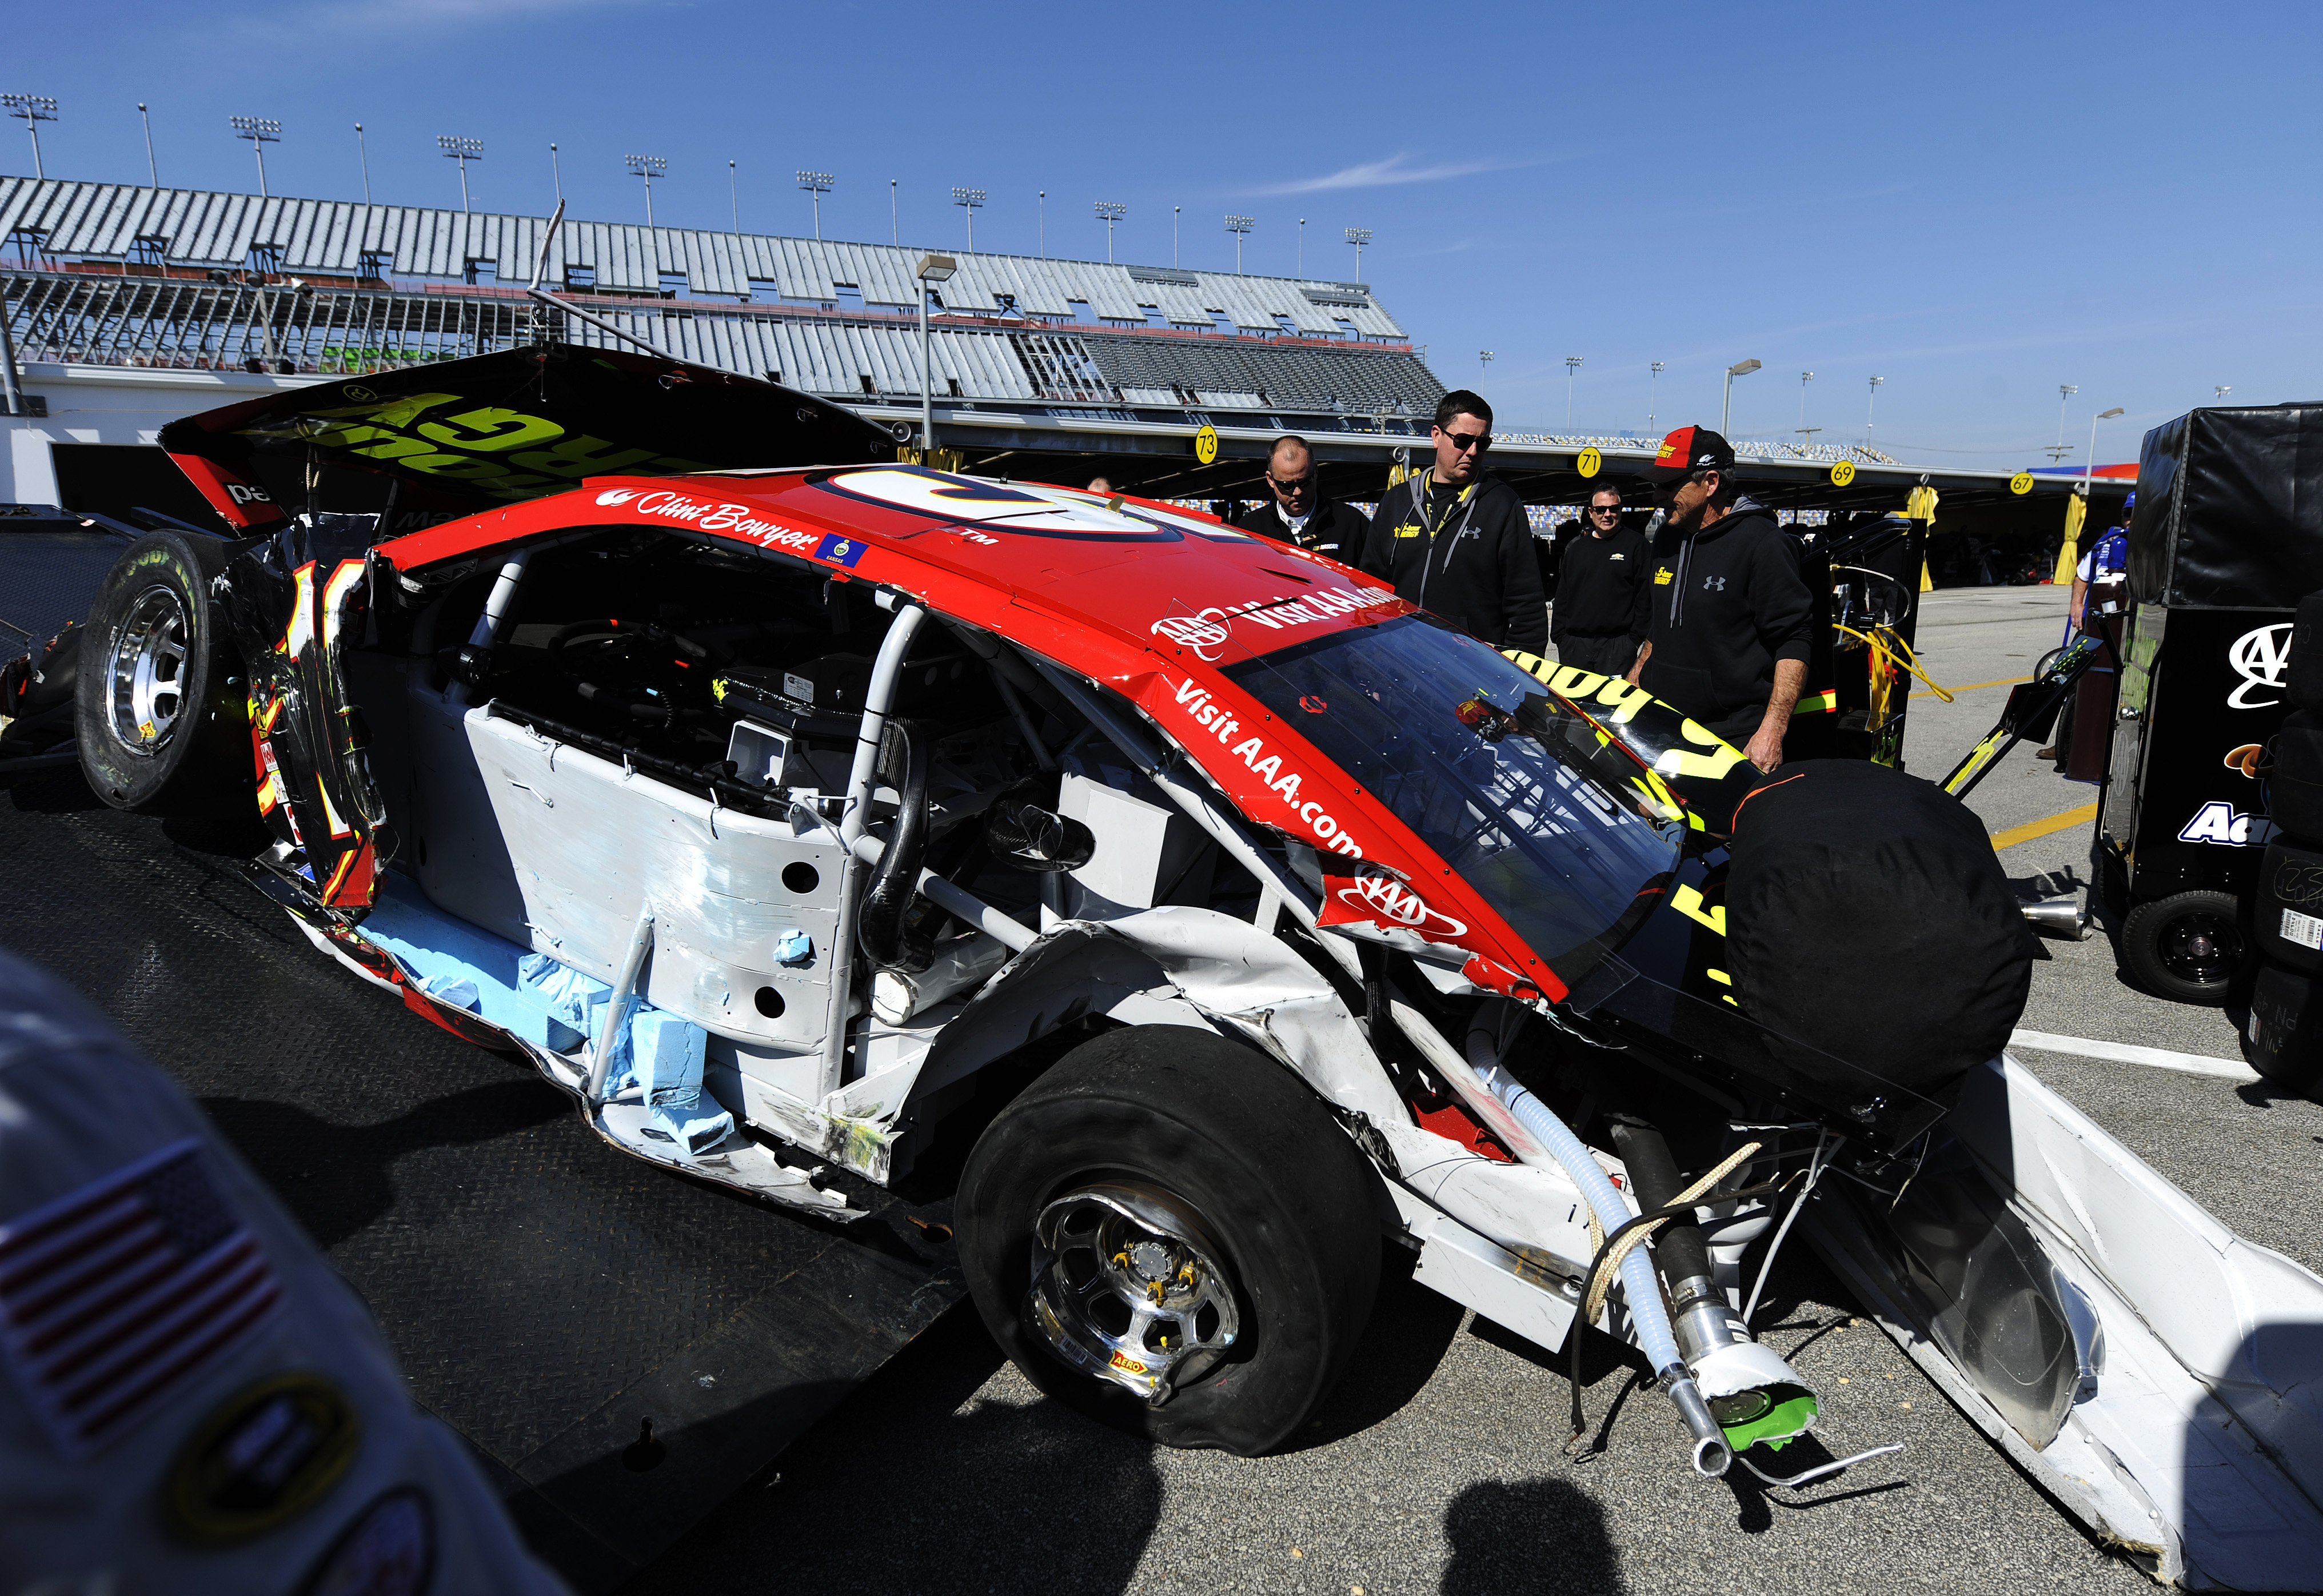 2015 Daytona 500: Clint Bowyer livid after Reed Sorenson wreck in new qualifying format